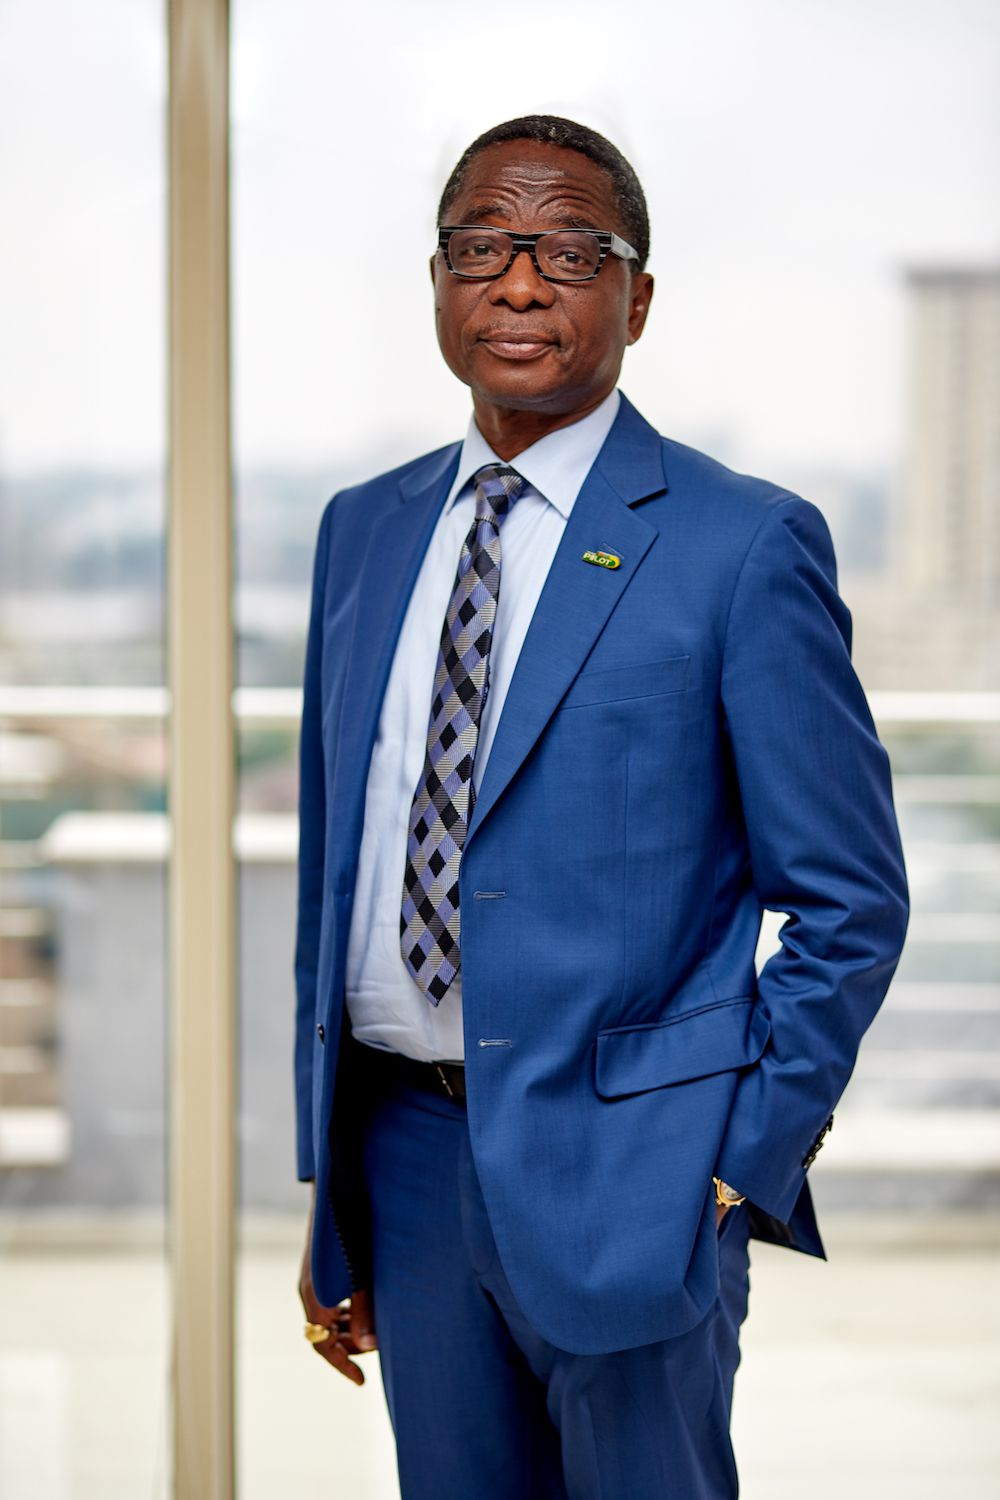 FLOUR MILLS OF NIGERIA PLC ANNOUNCES THE RETIREMENT OF PAUL GBEDEDO AS GROUP MANAGING DIRECTOR / CHIEF EXECUTIVE OFFICER